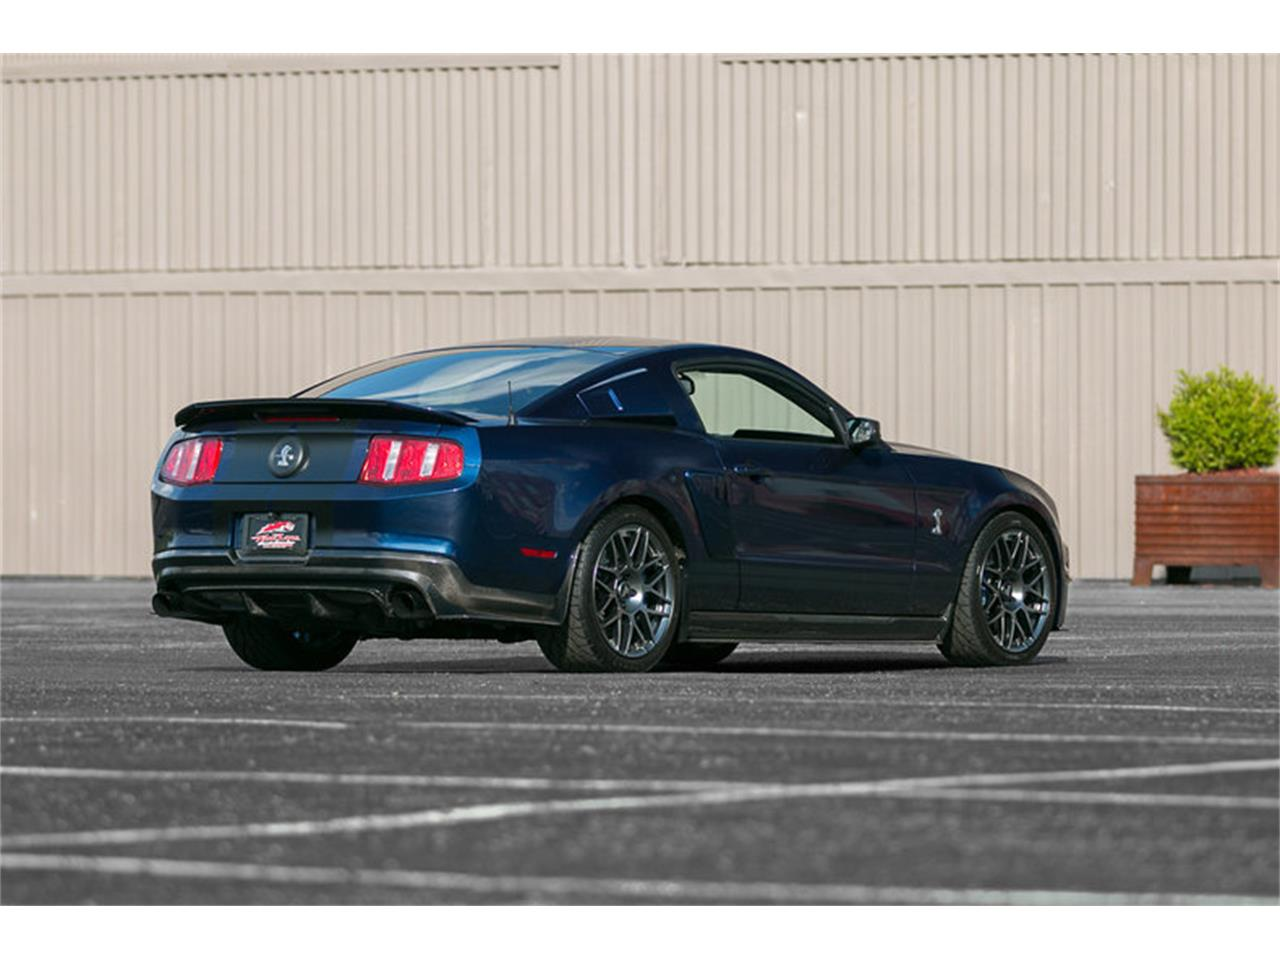 Large Picture of '12 Ford Mustang located in St. Charles Missouri - $49,995.00 - L68T